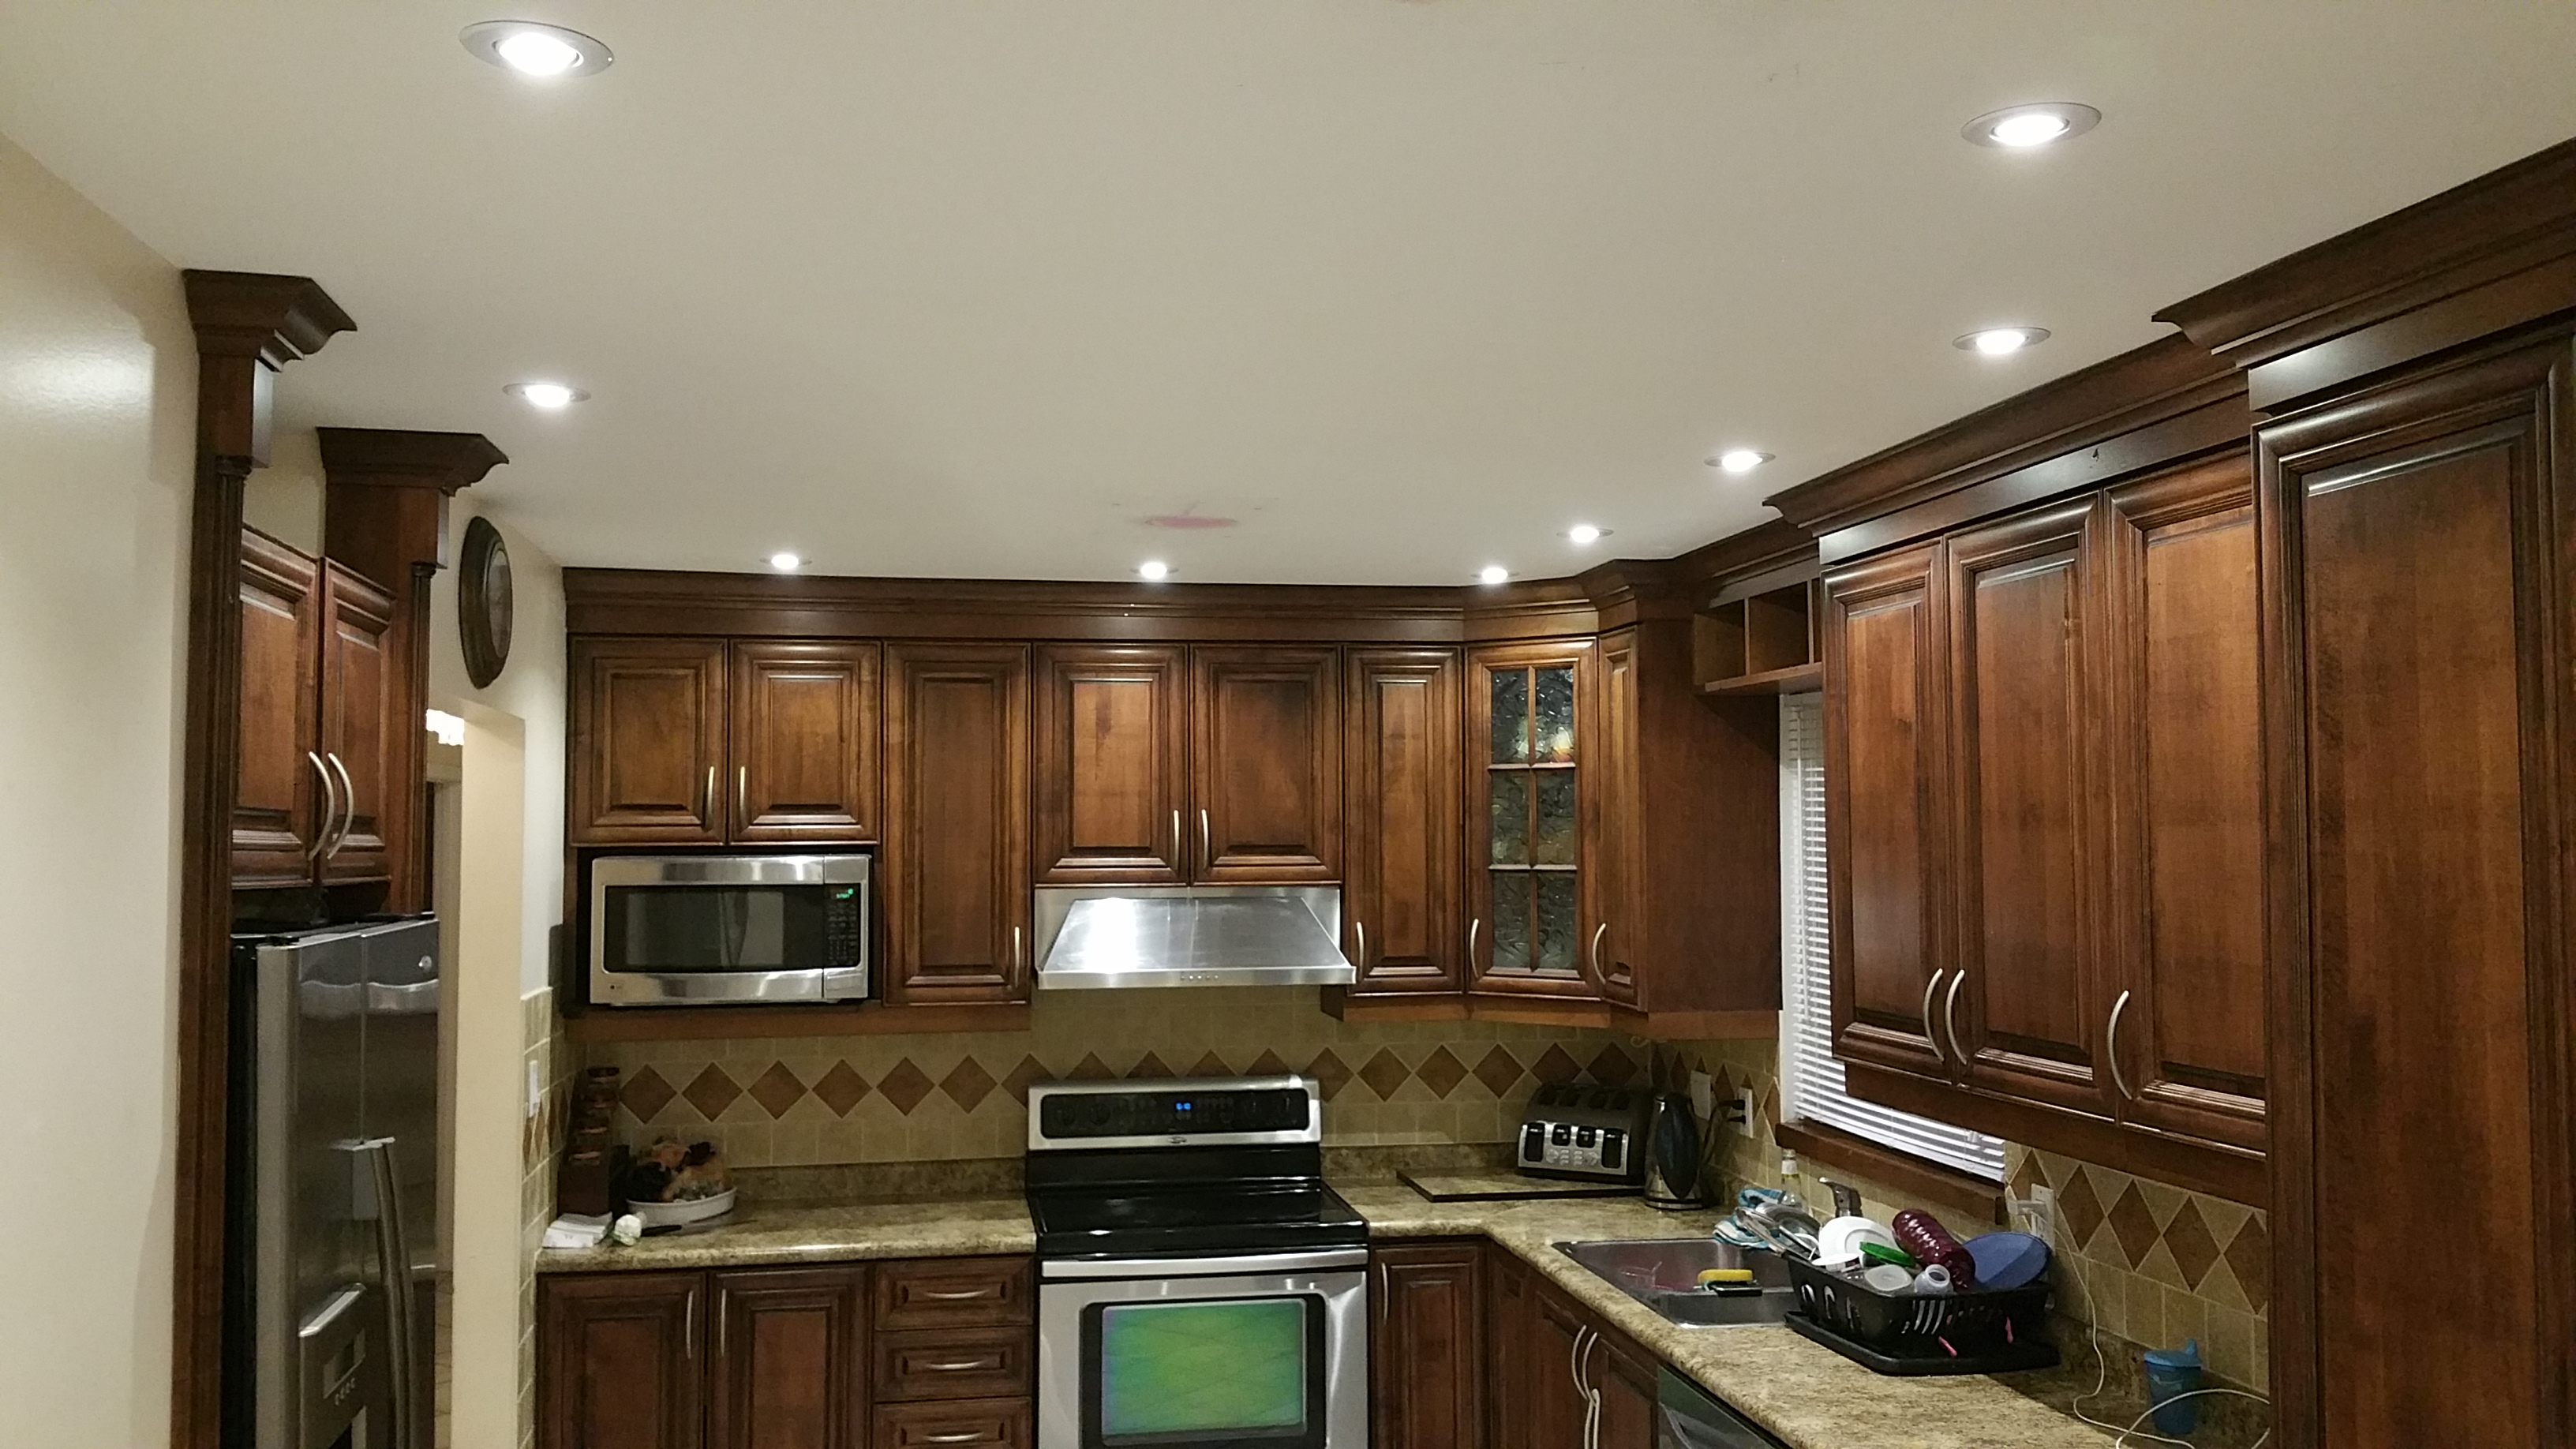 pot lights for kitchen gray floor top five renovations that increase property value quality potlight